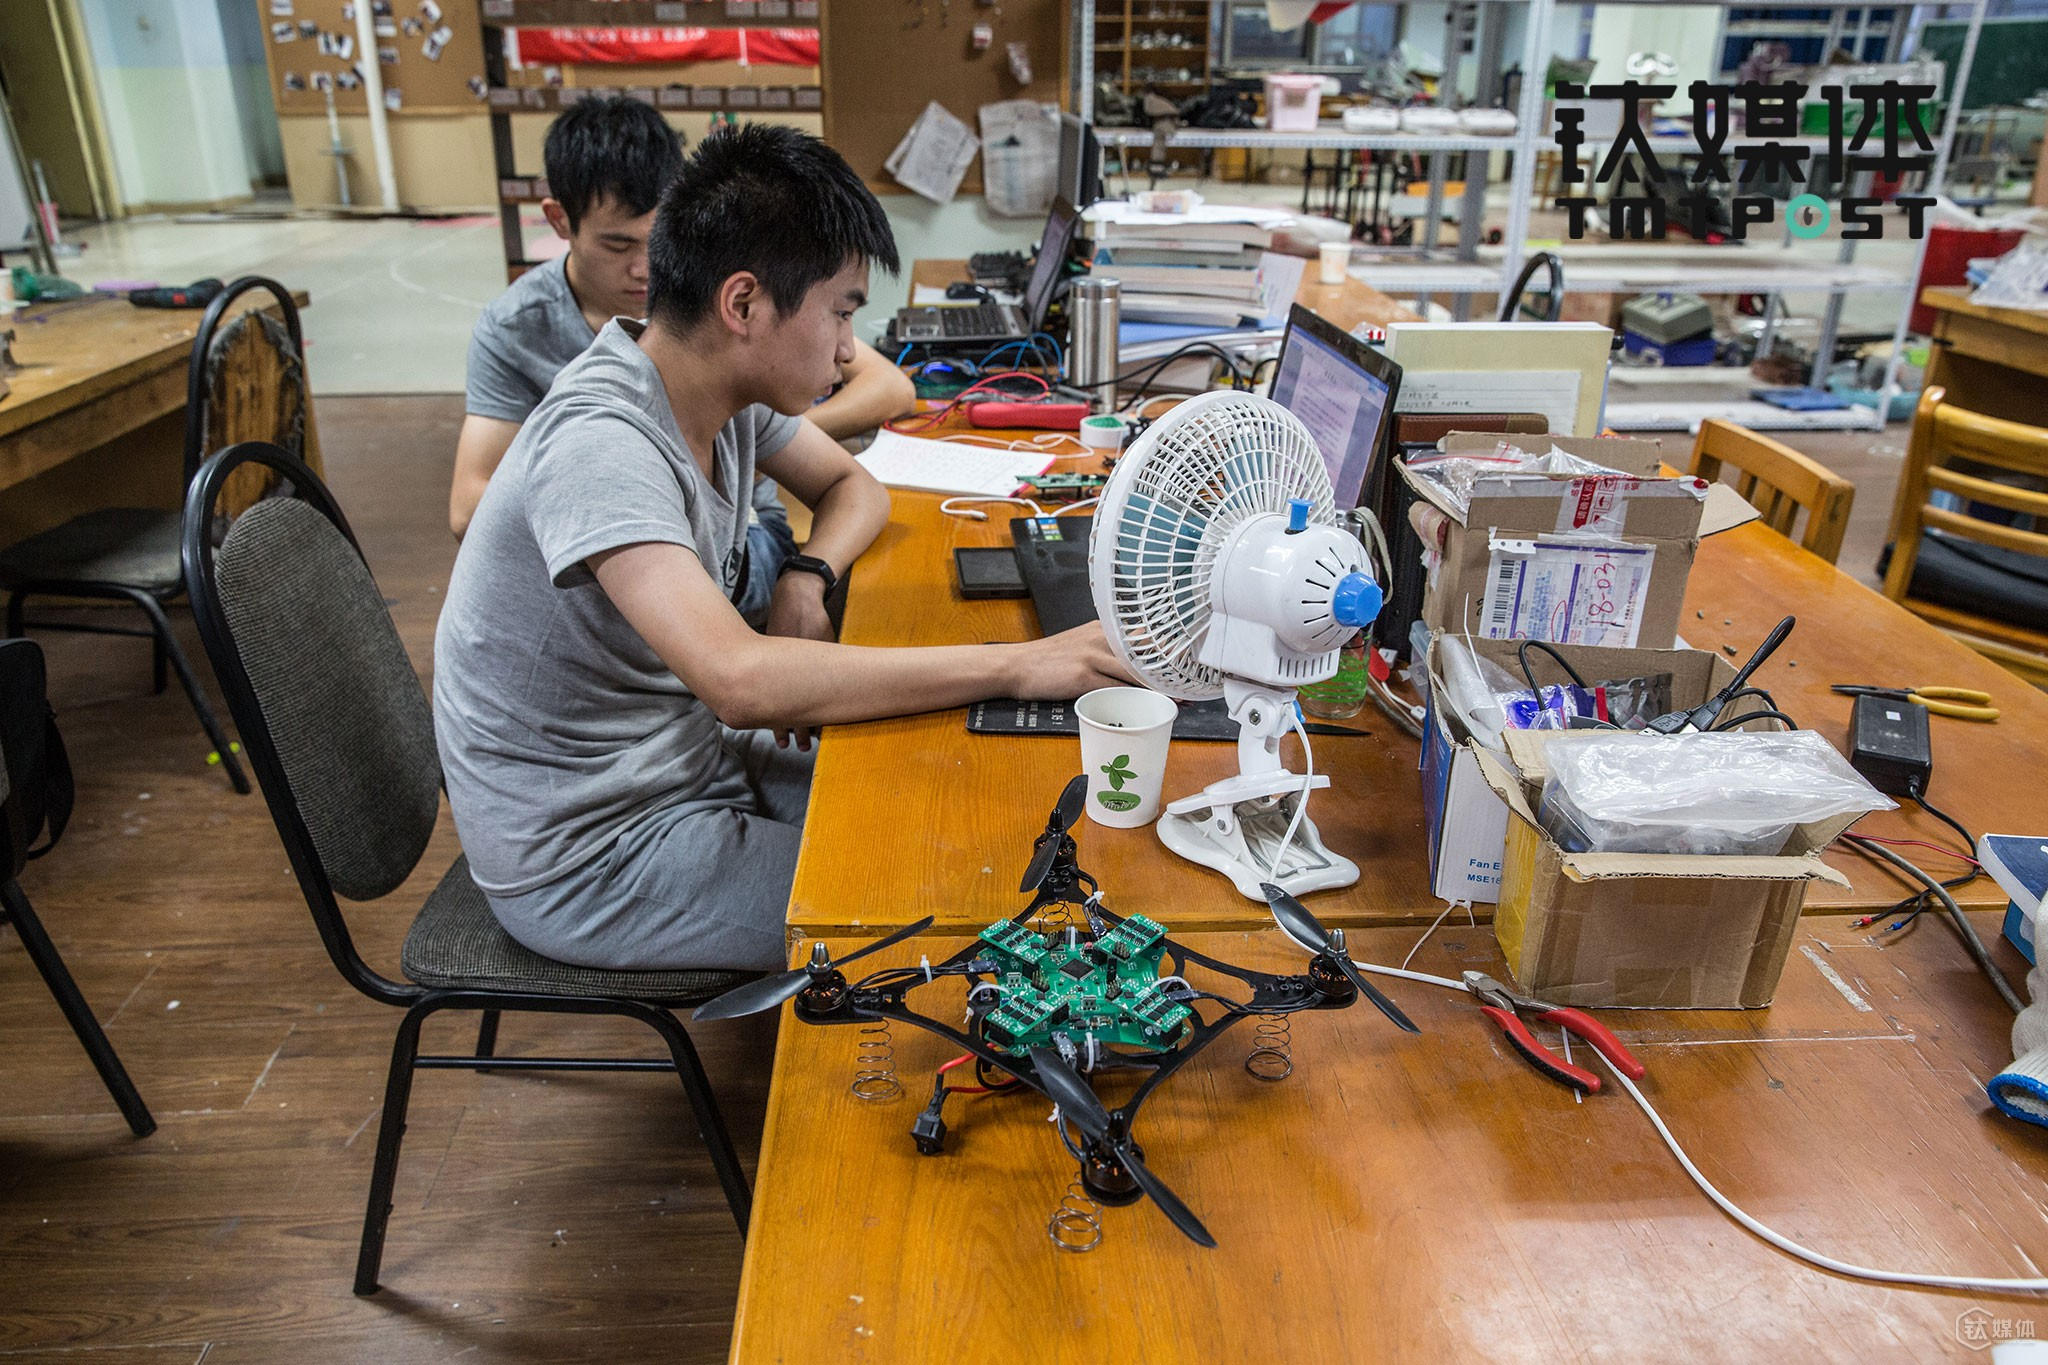 Genggeng is a super fan of electromechanical design and is very interested in solving technical problems. He made a drone by himself recently driven by curiosity.